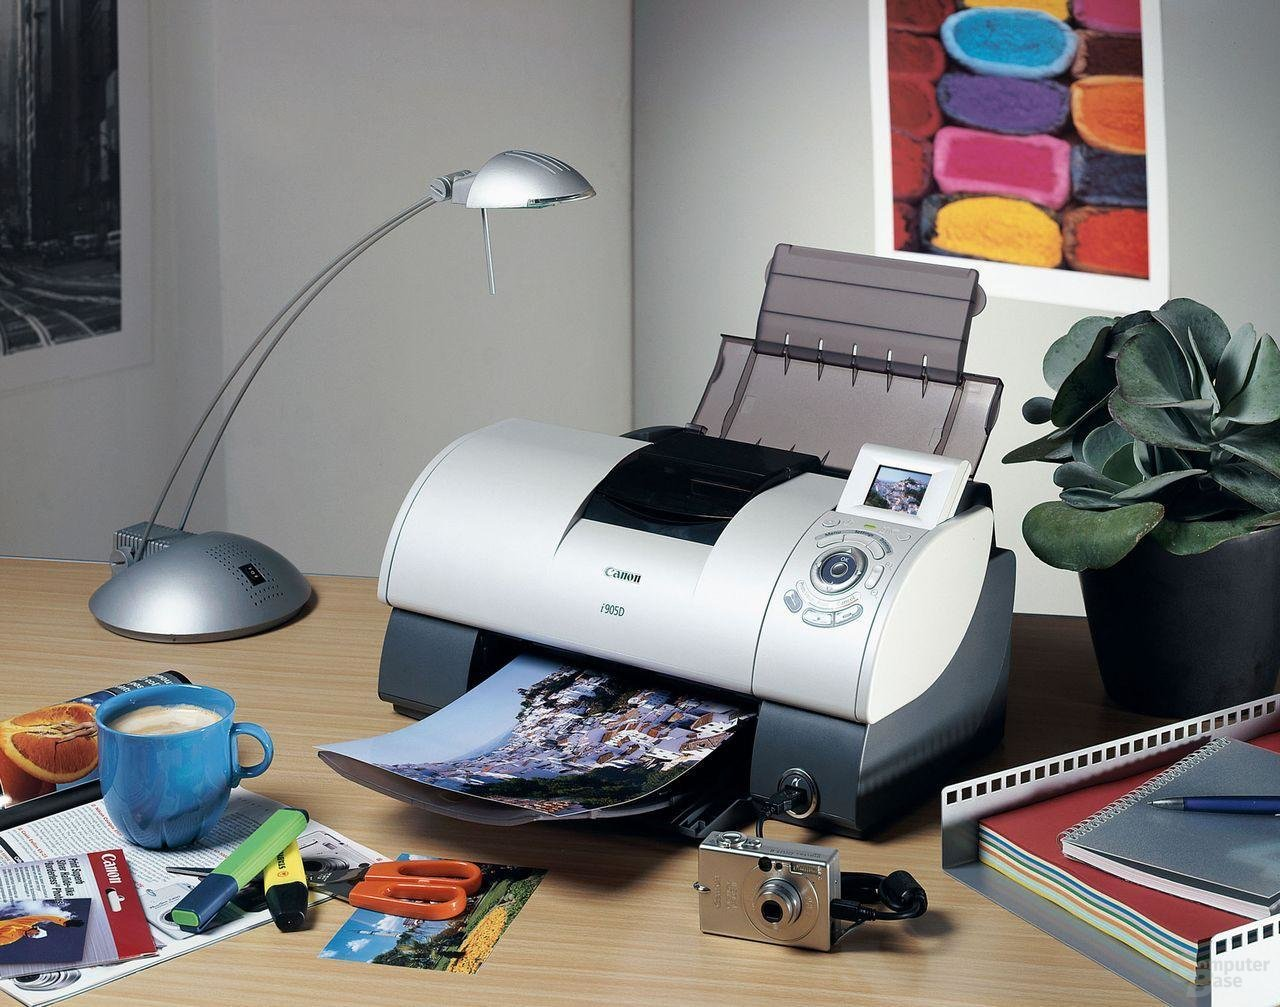 Andy Warhol - Wikipedia Best event photography printer